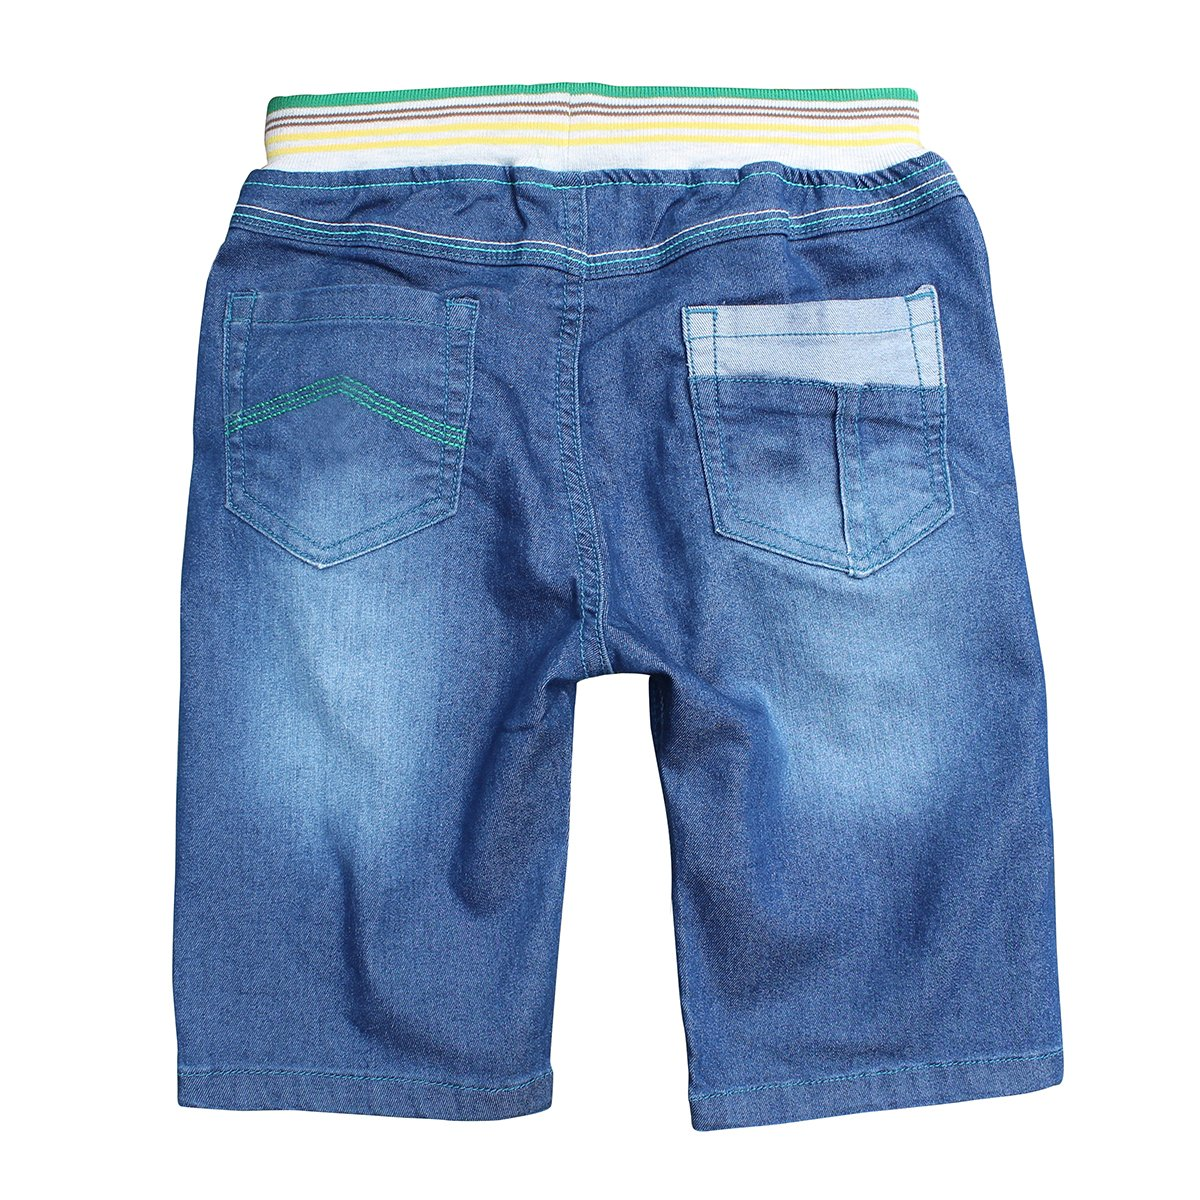 Abalaco Boys Regular Jeans Short Stretch Denim Pull-on Sport Casual Pants 5-11 Years